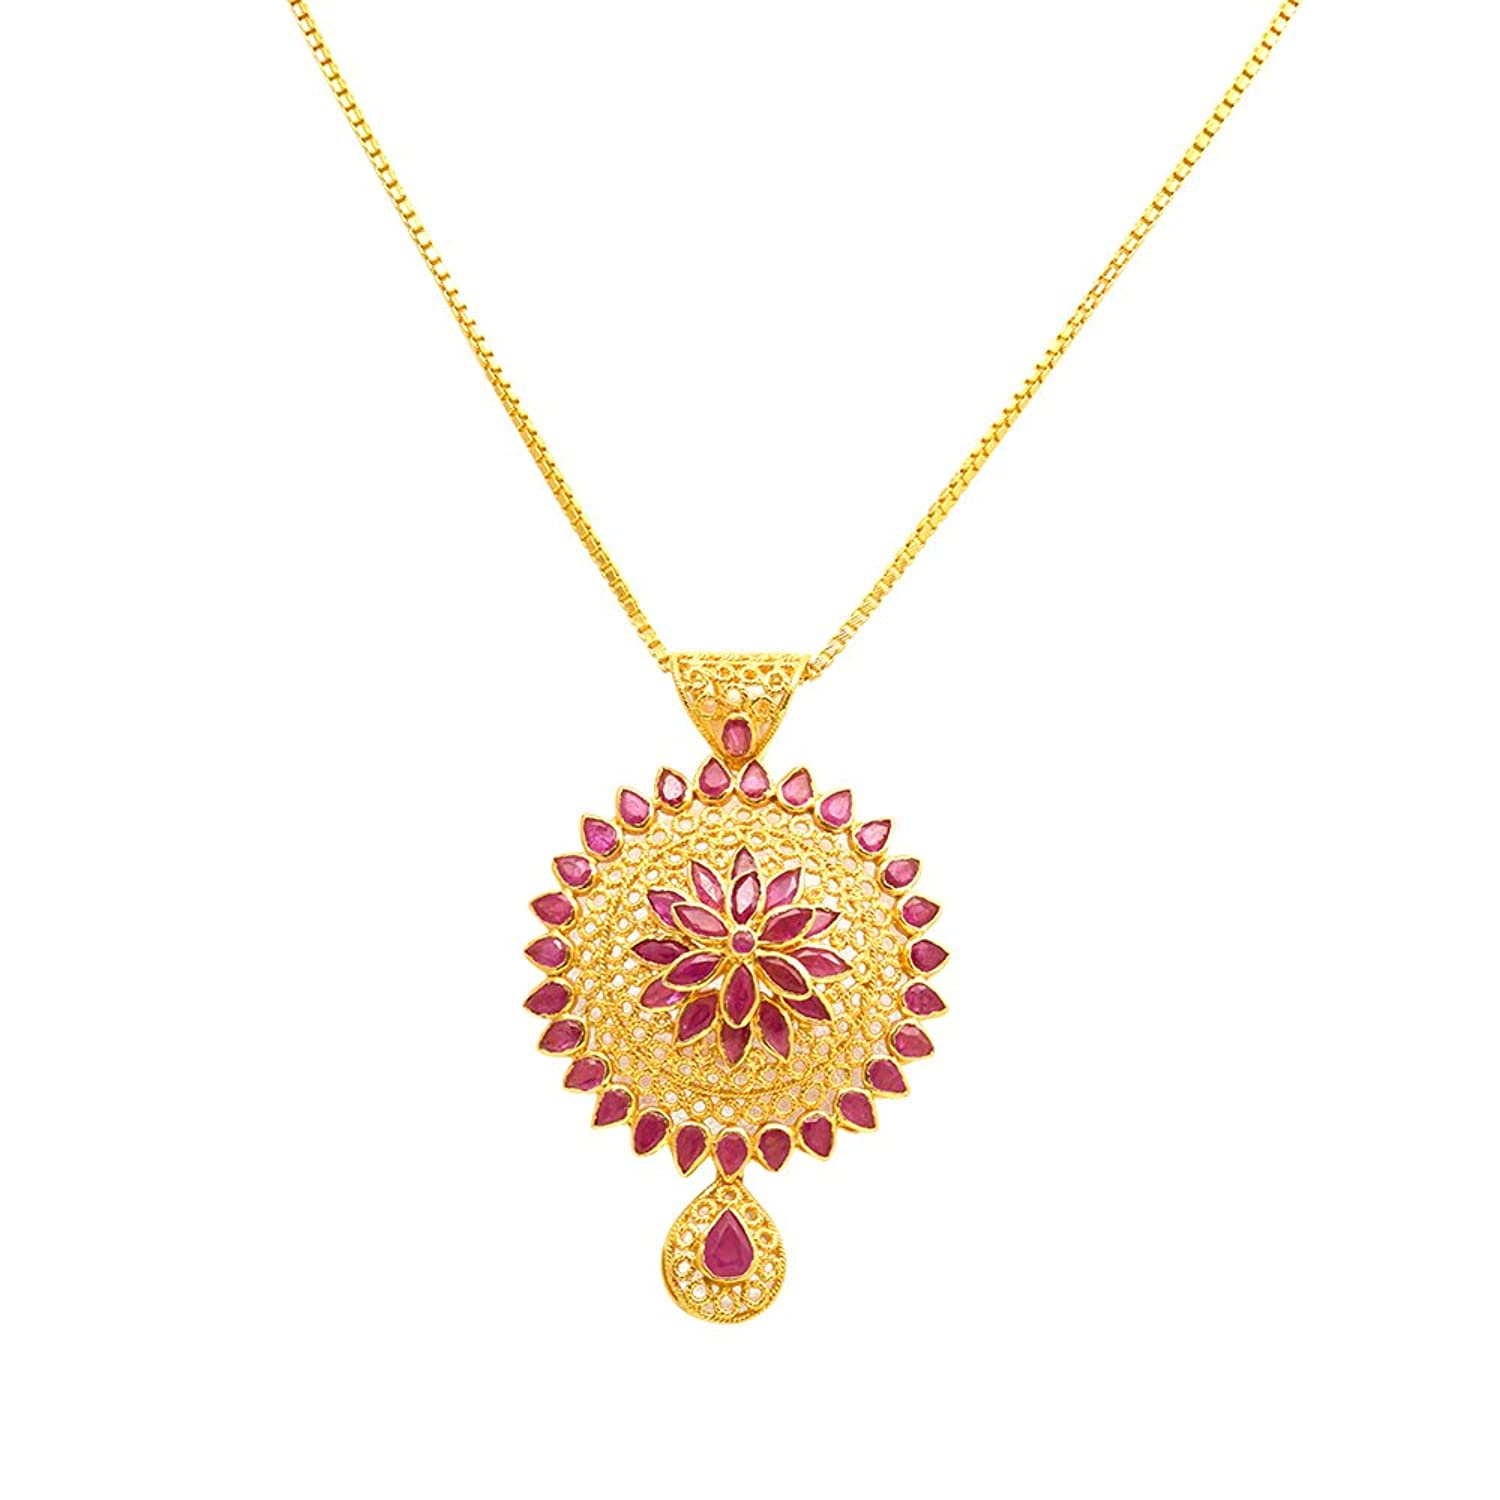 n ruby pendant style angara vintage aaa gold border oval free inches white halo diamond chain with p wg and comes